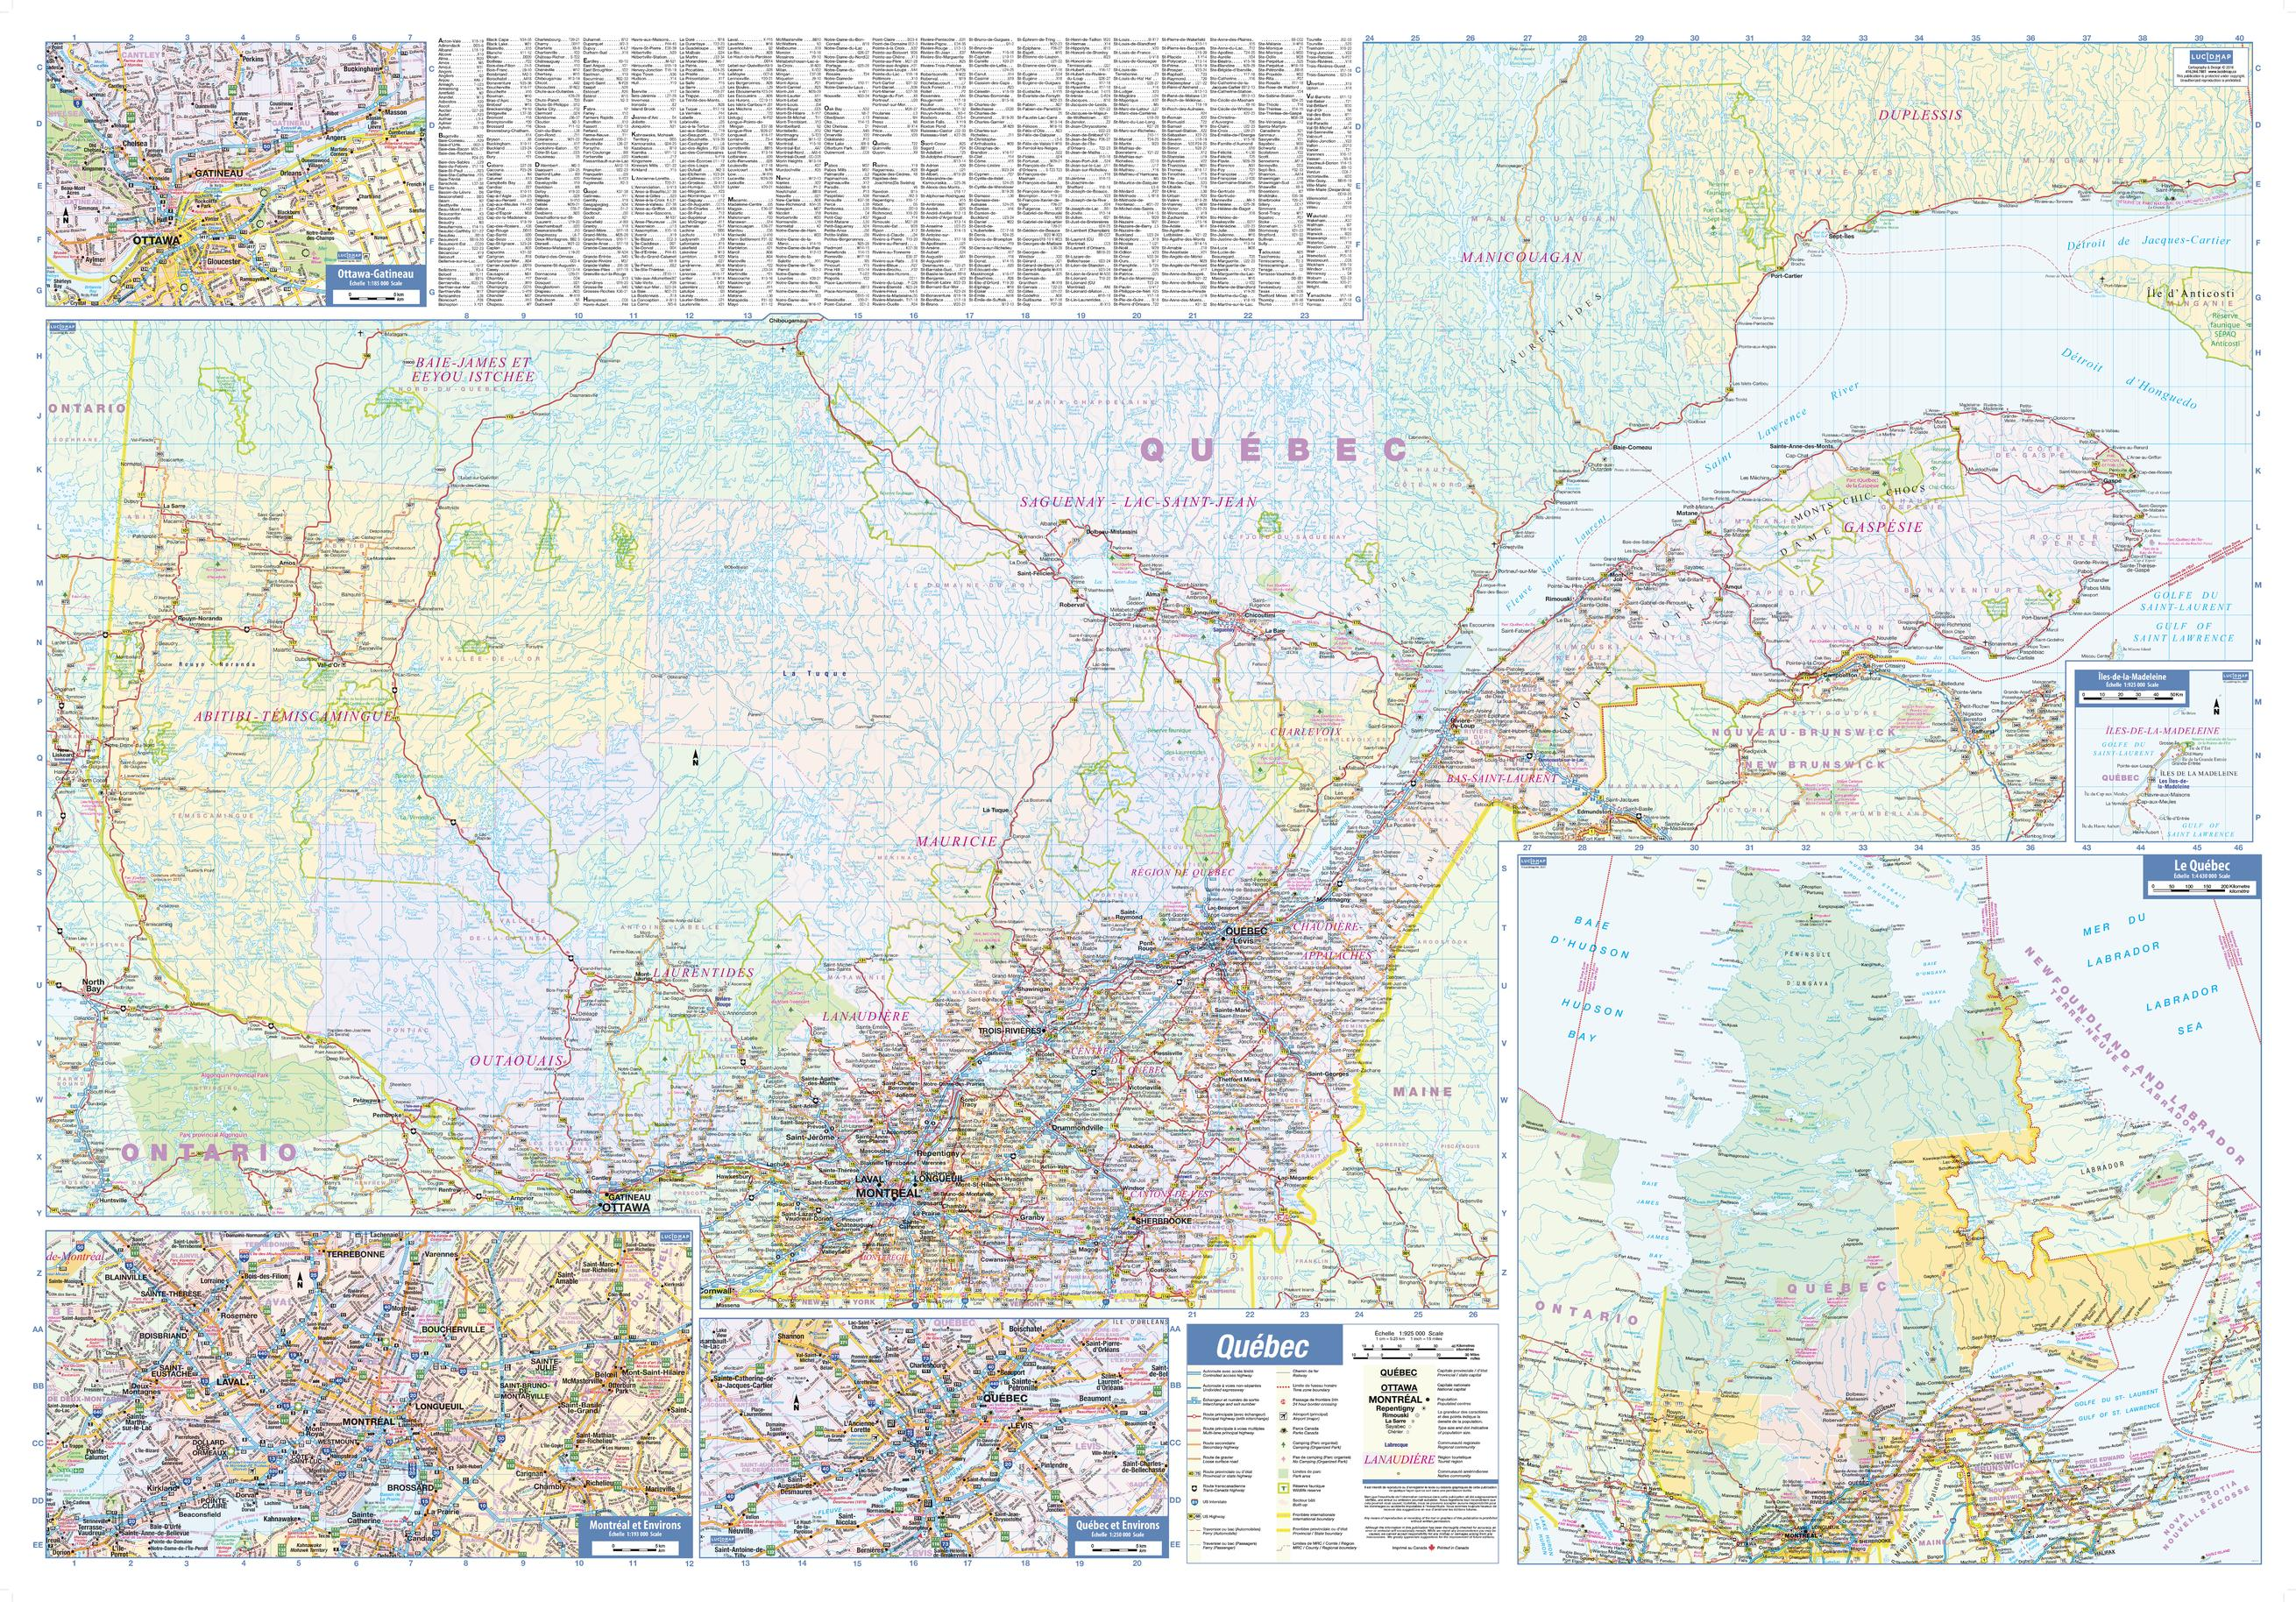 Quebec Province Wall Map with Index - large